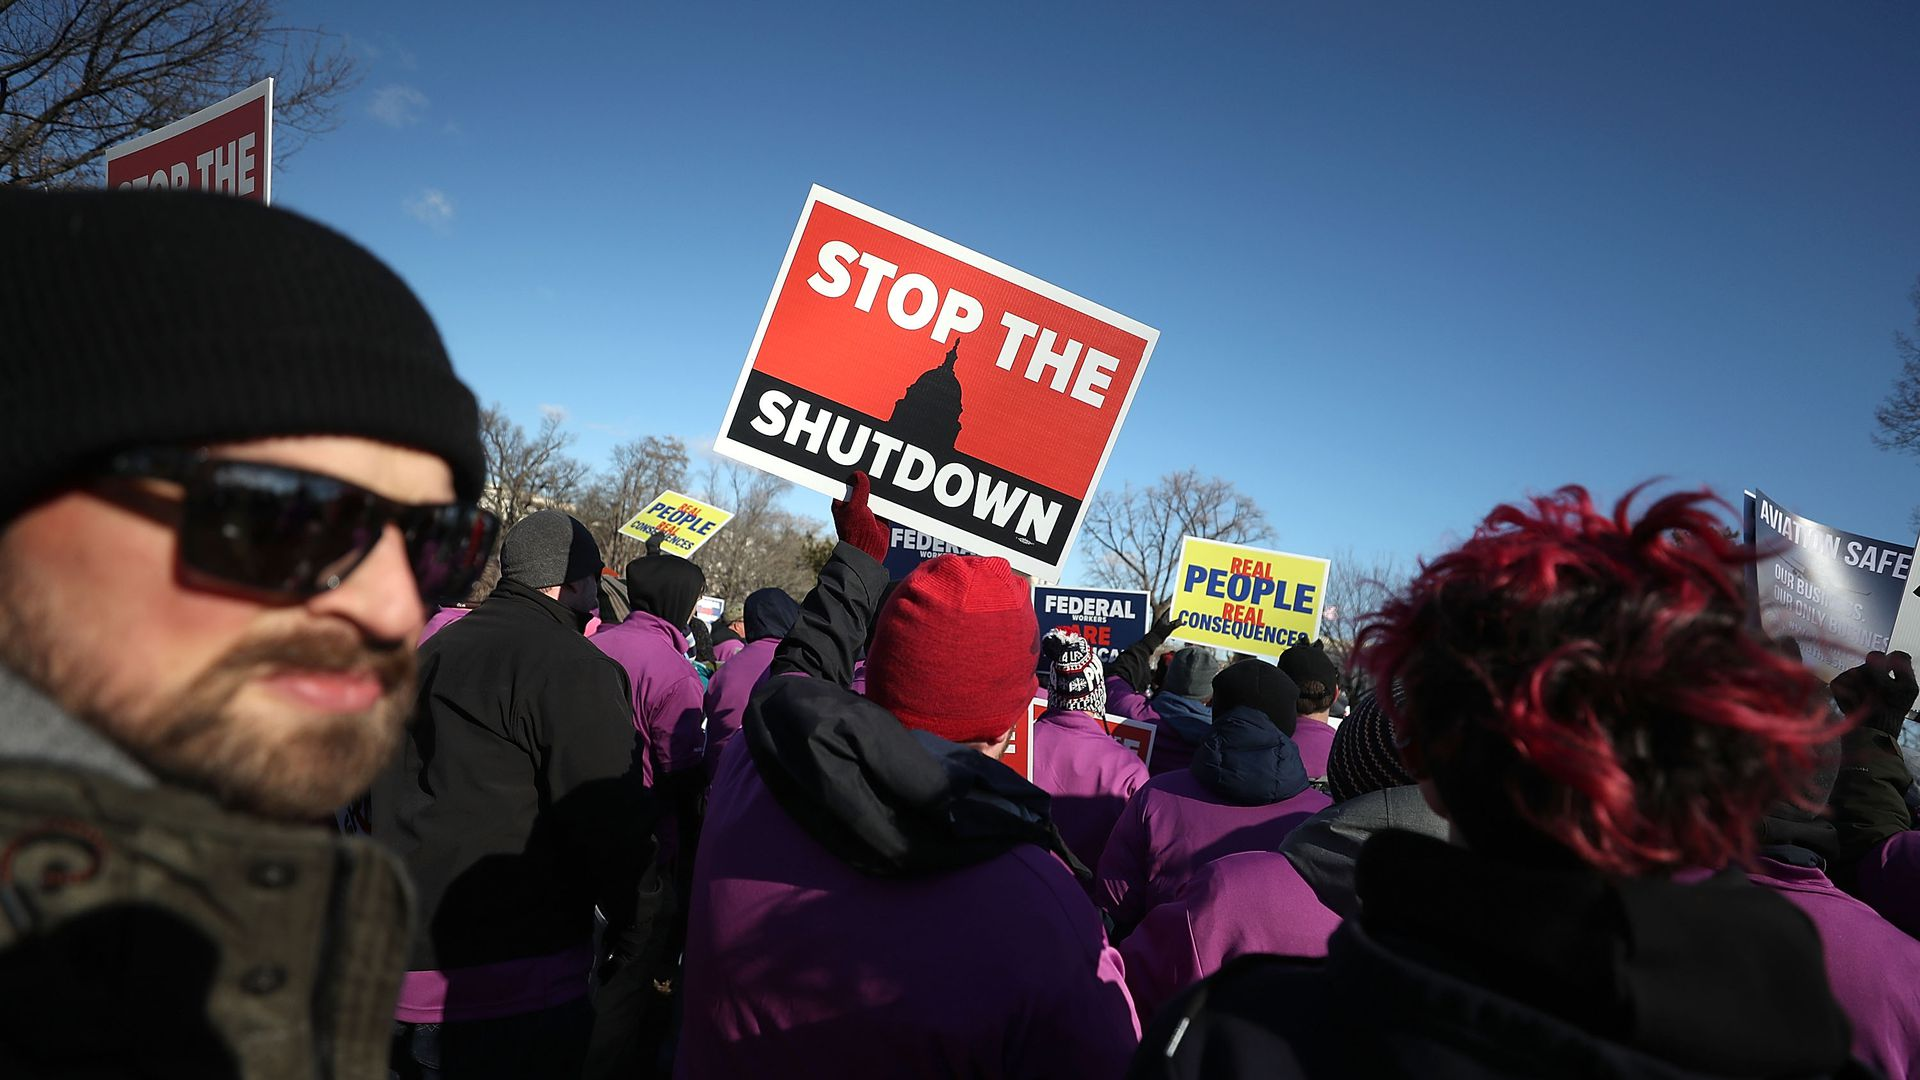 Shutdown Will Wreak Havoc On Economy In March – Airlines, Small Businesses, Travel Industry All Hit